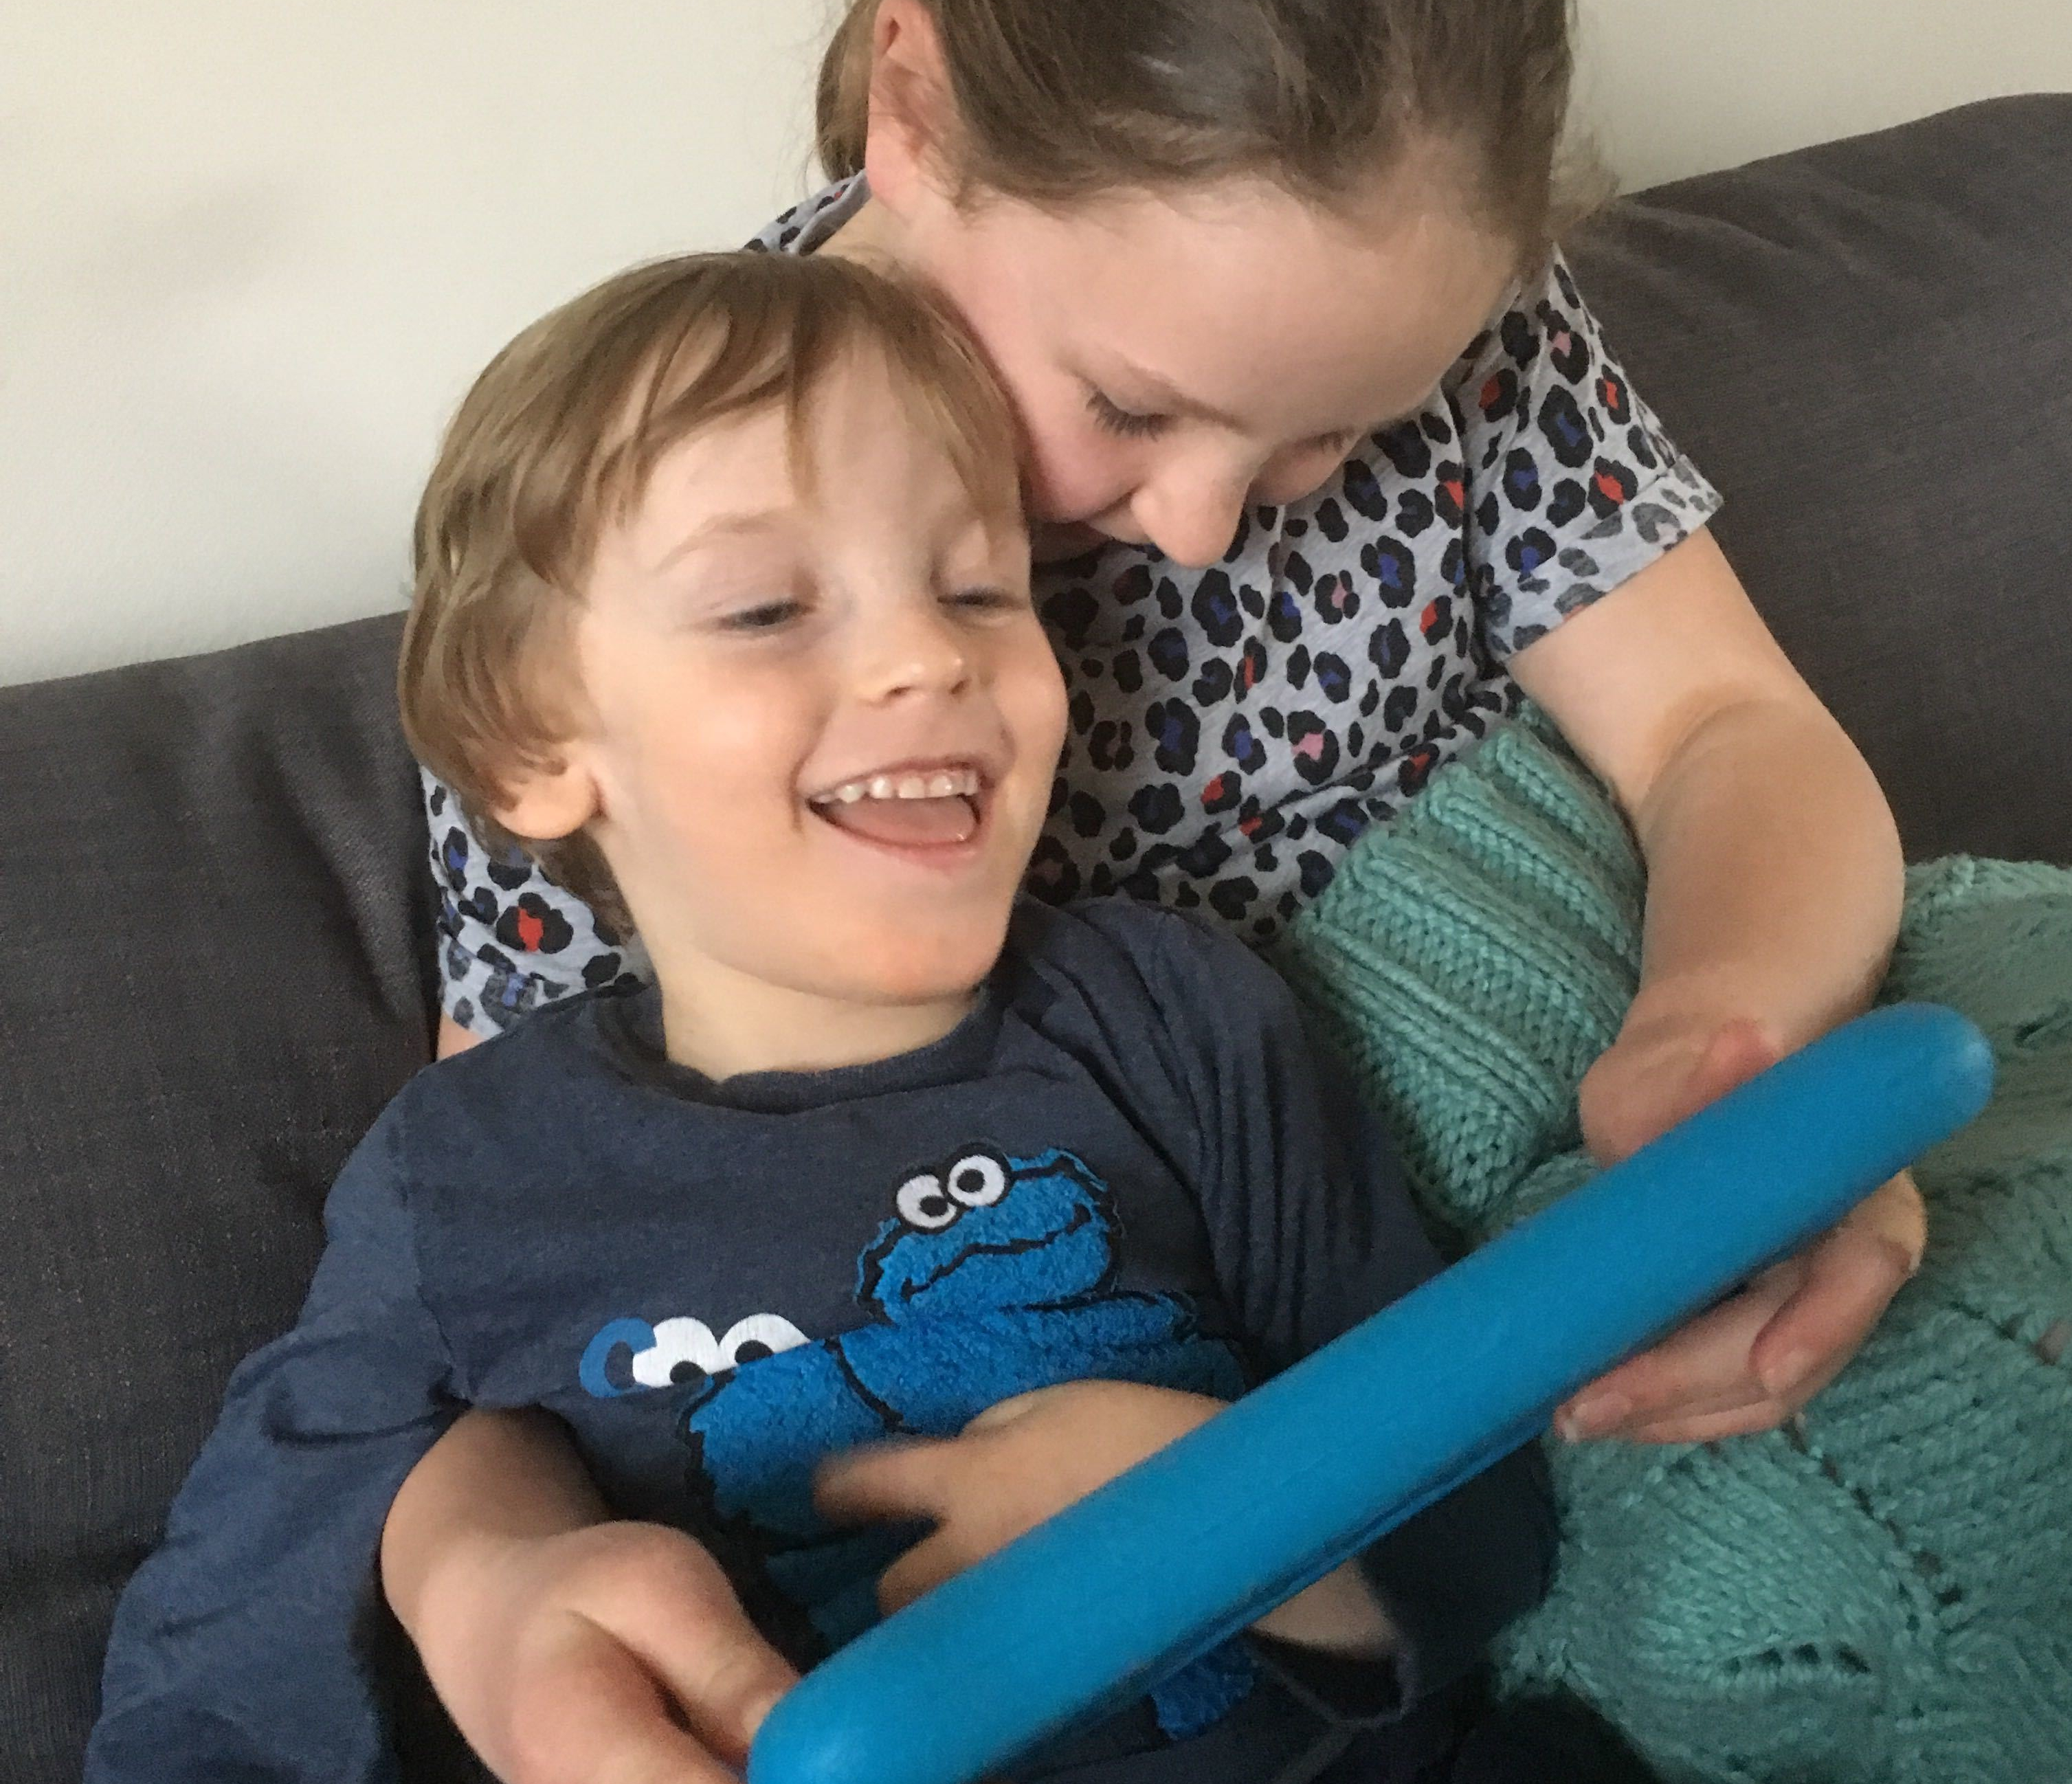 Photo of Quinns and his Big Sister together on the sofa playing on the tablet Big Sister is holding.